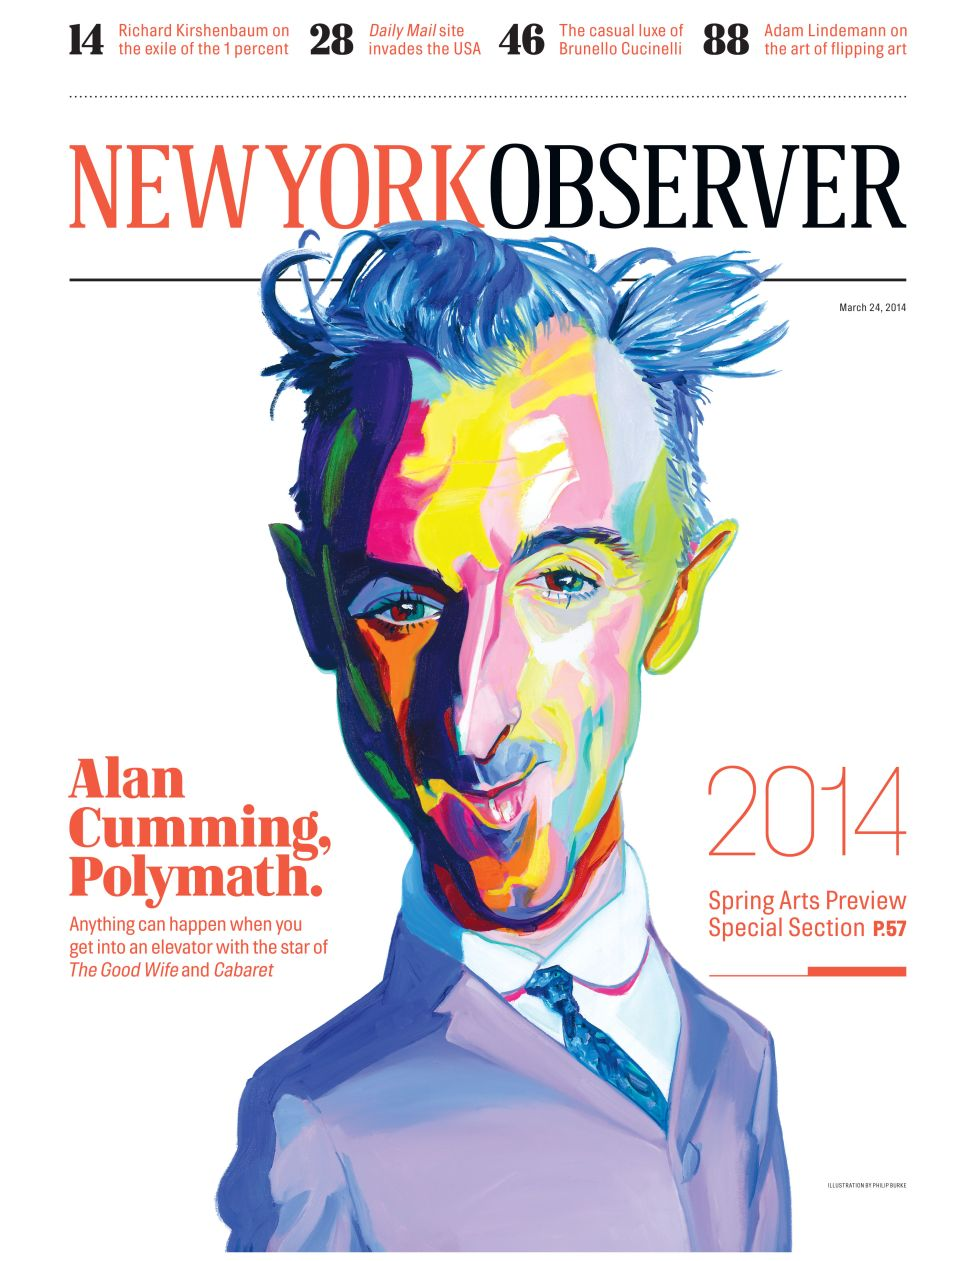 Editor's Note: On the New Observer